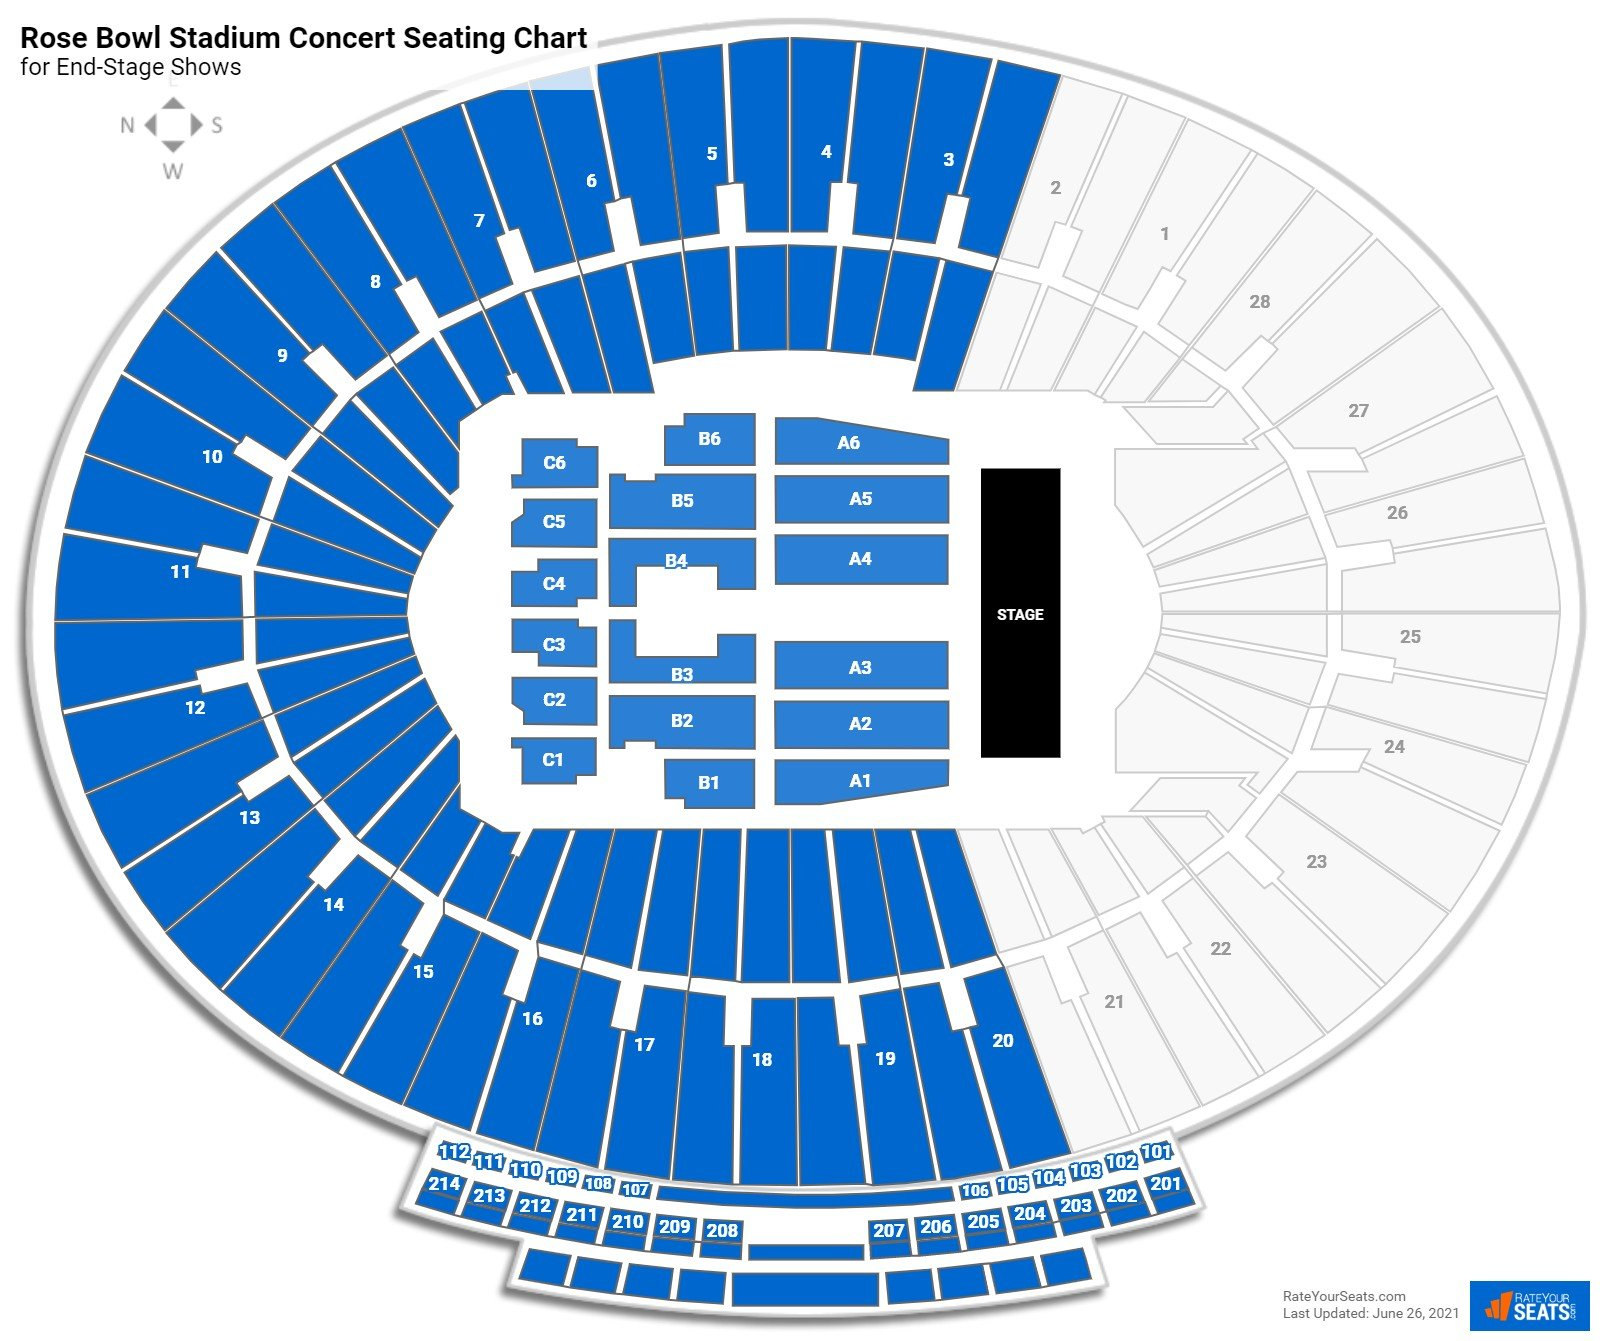 Rose Bowl Stadium Seating Chart for Concerts